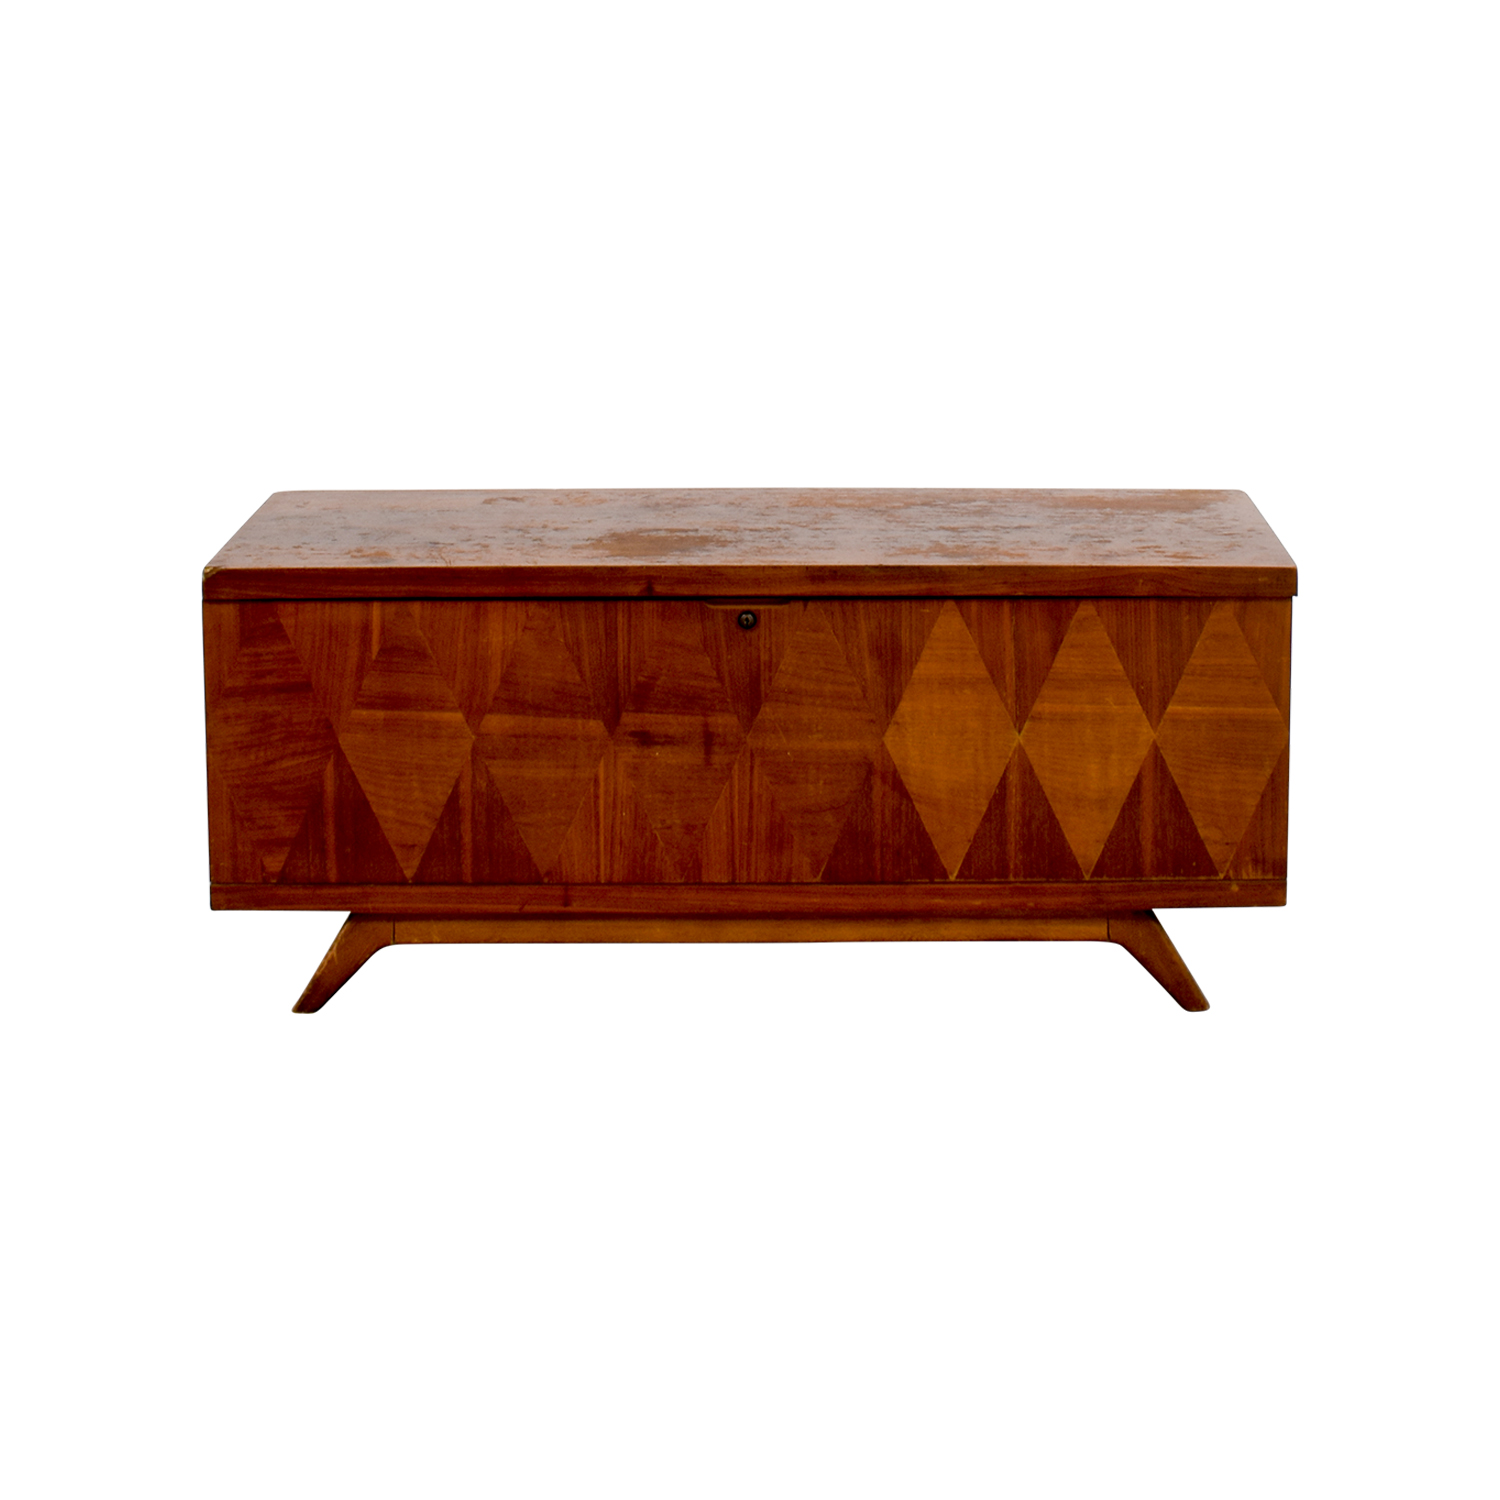 Lane Furniture Wooden Trunk Coffee Table Storage Unit sale